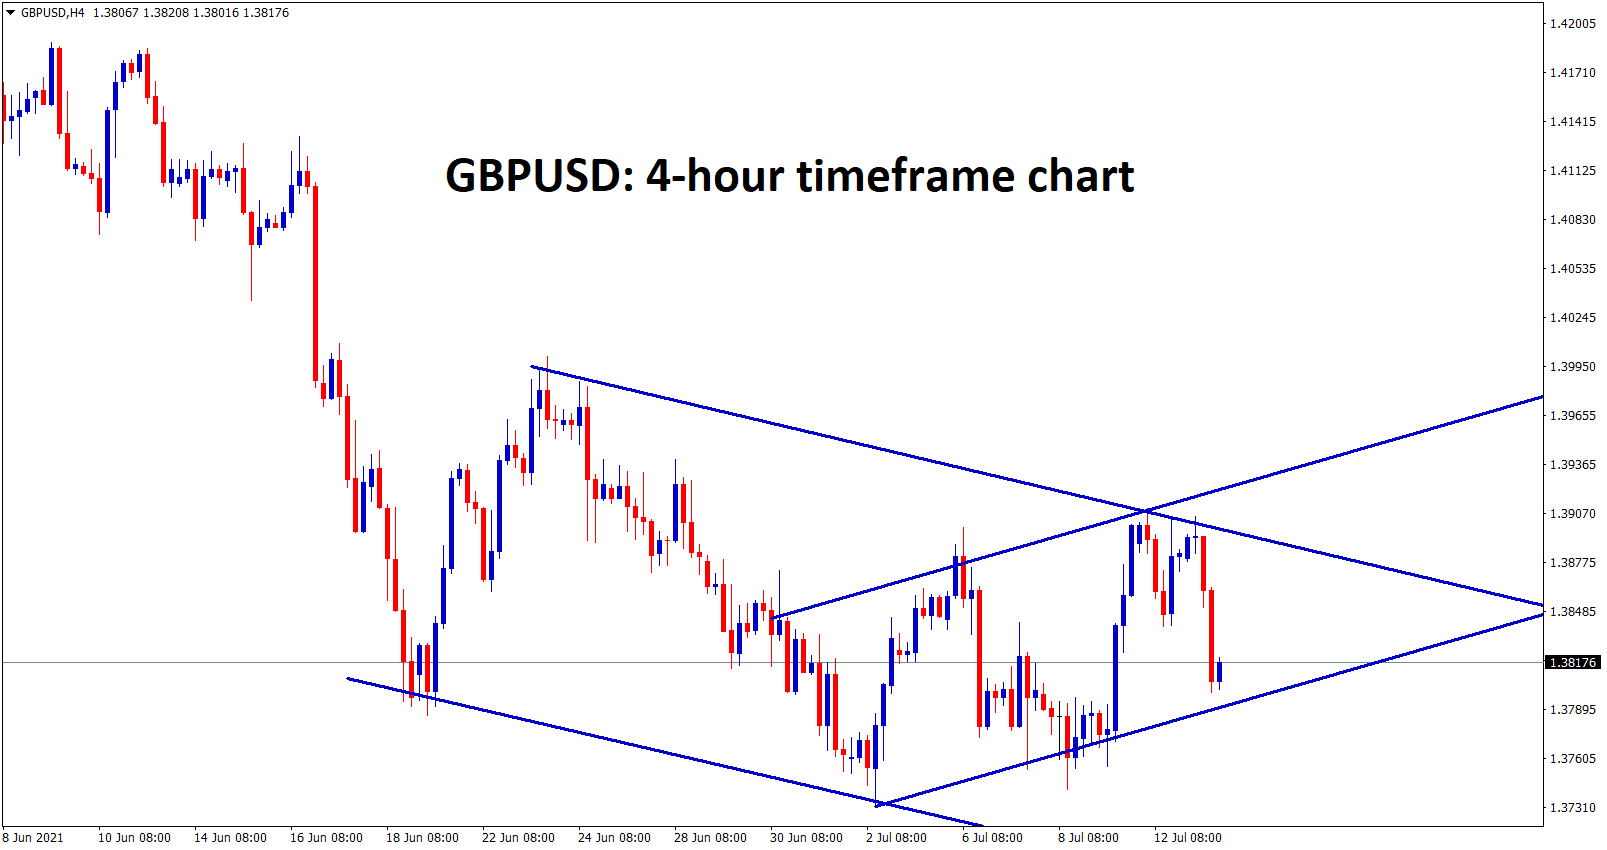 GBPUSD is moving in a channel ranges